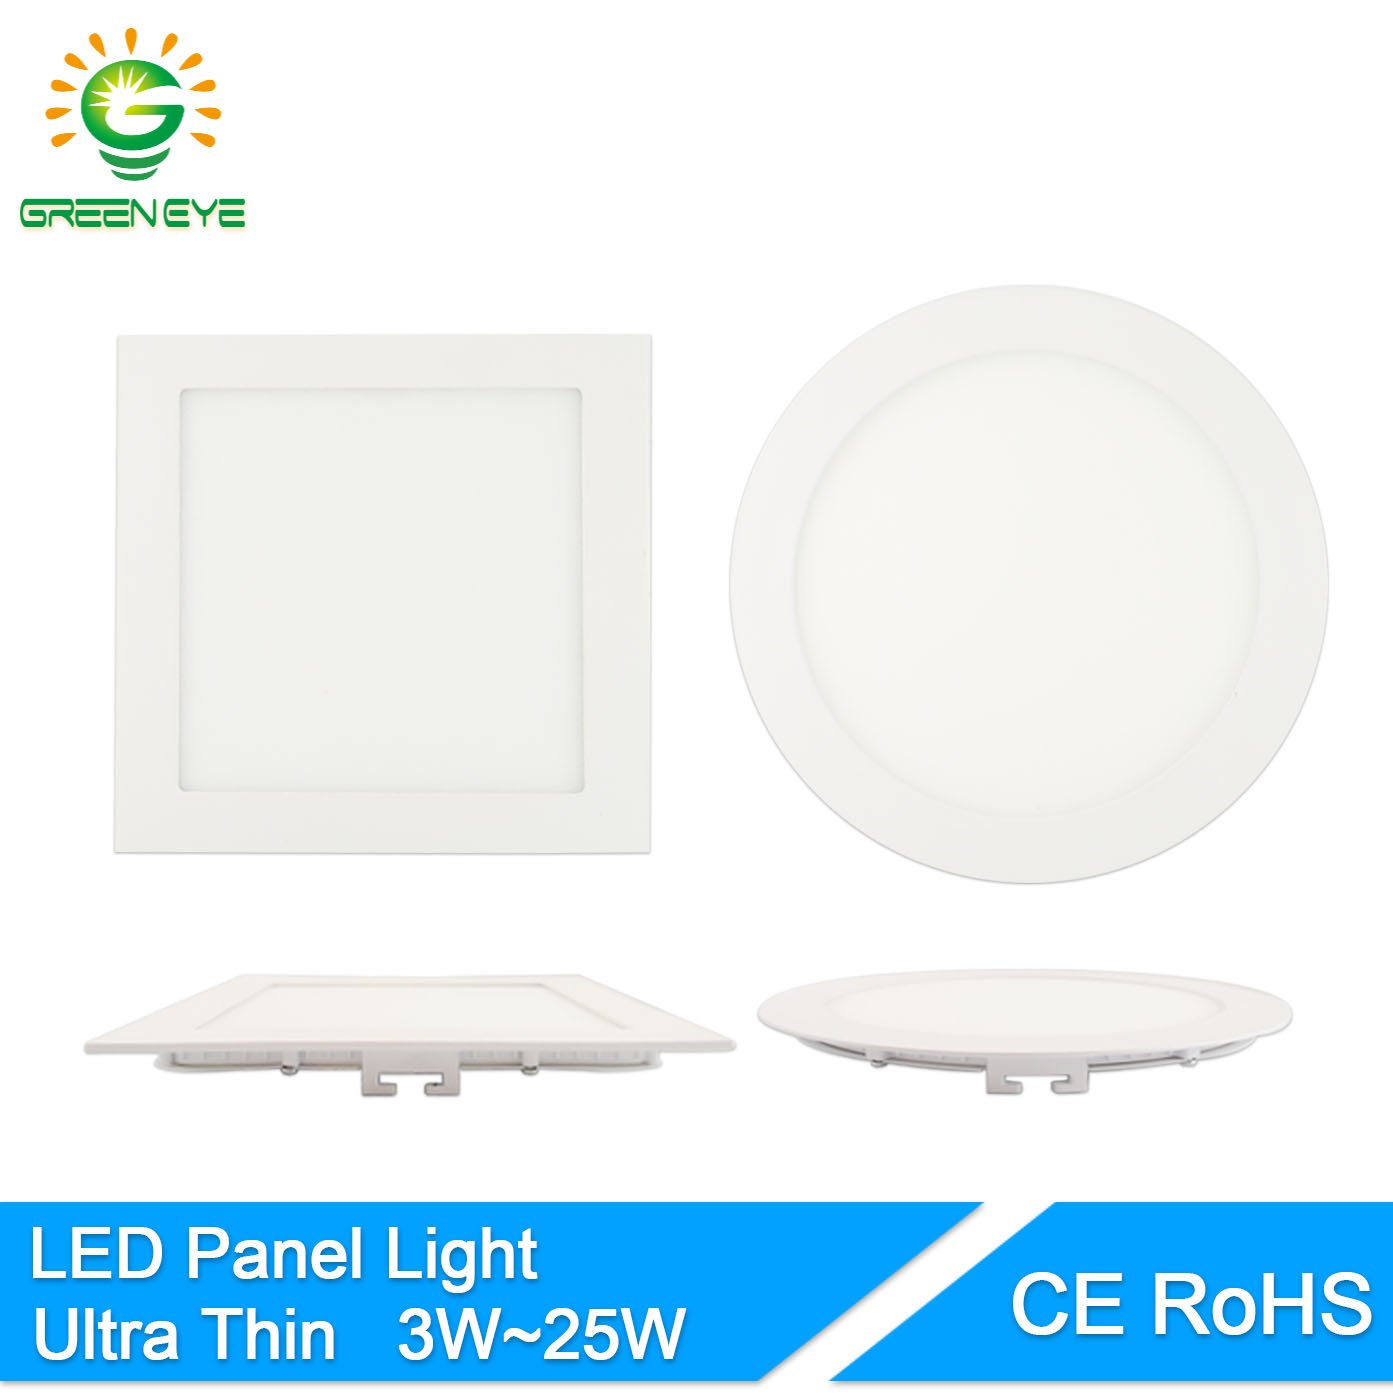 GreenEye Ultra-Thin AC 85-265v 3w-25w LED Panel Light Round/Square LED Ceiling Recessed Downlight 4w 6w 9w 12w 15w 18w Lamp 220v square led panel light smd 2835 3w 6w 9w 12w 15w 18w 20w ac 85 265v led ceiling recessed lamp led downlight driver for indoor